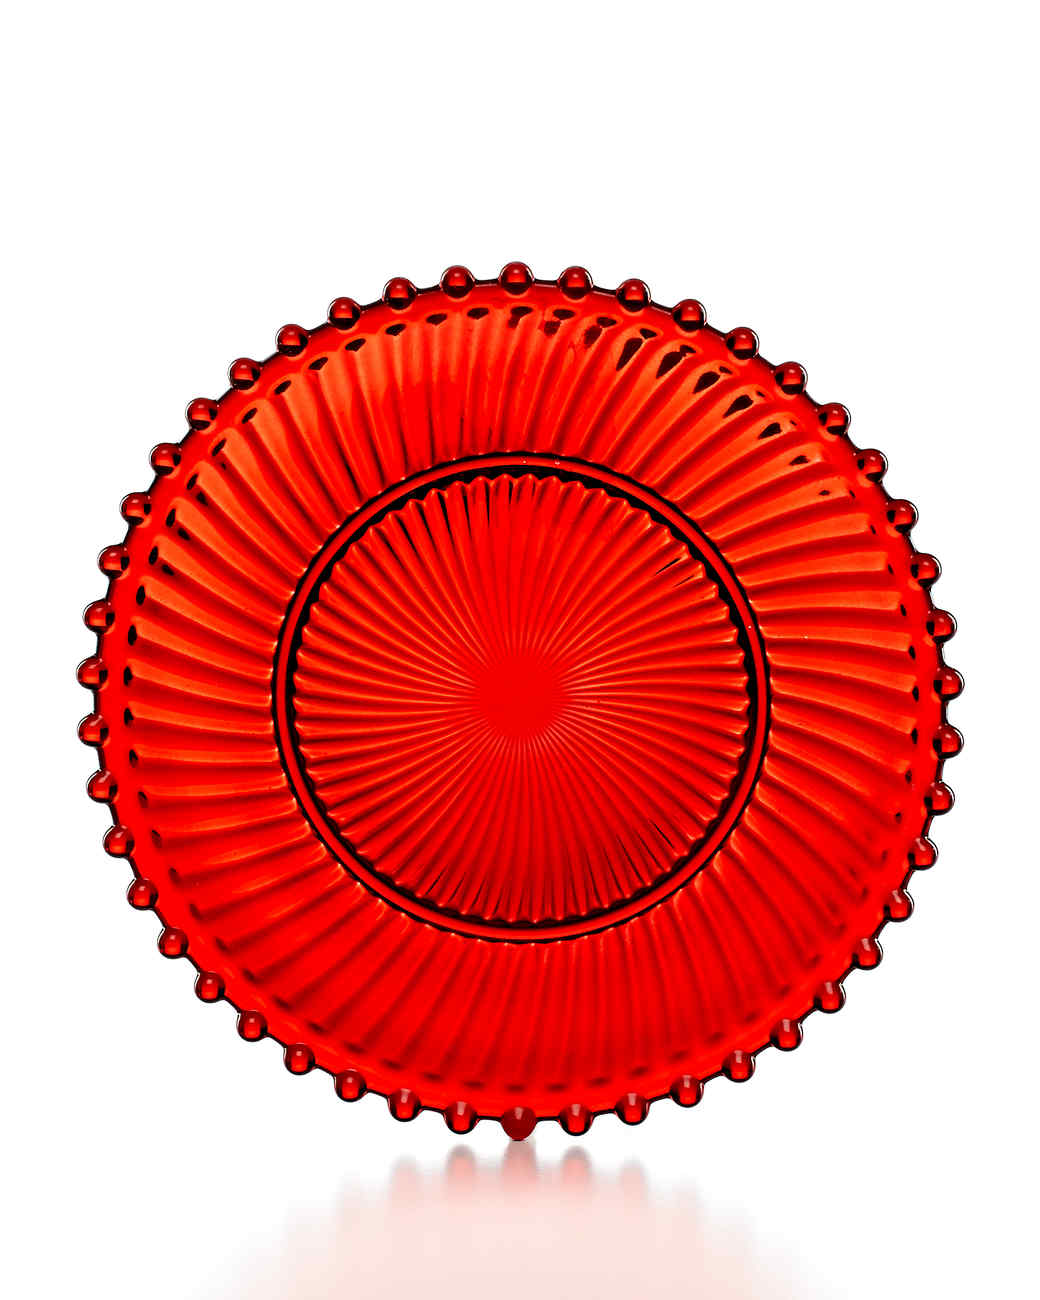 msmacys-dinnerware-red-glass-dessert-plate-mrkt-1013.jpg